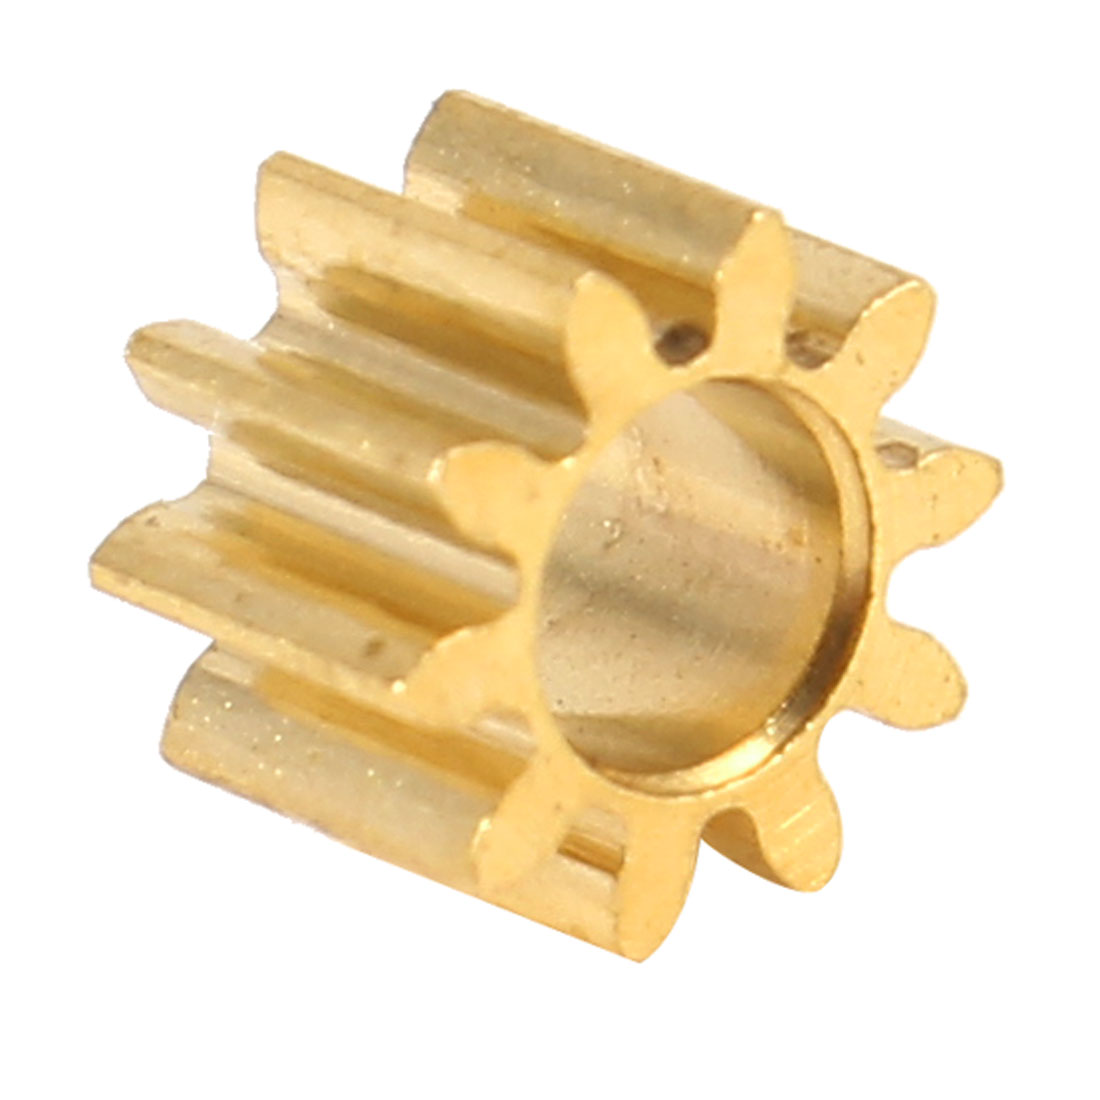 M0.5x10T 10 Teeth 3mm Dia Shaft Hole Speed Reducing Gearbox Motor Gear Gold Tone